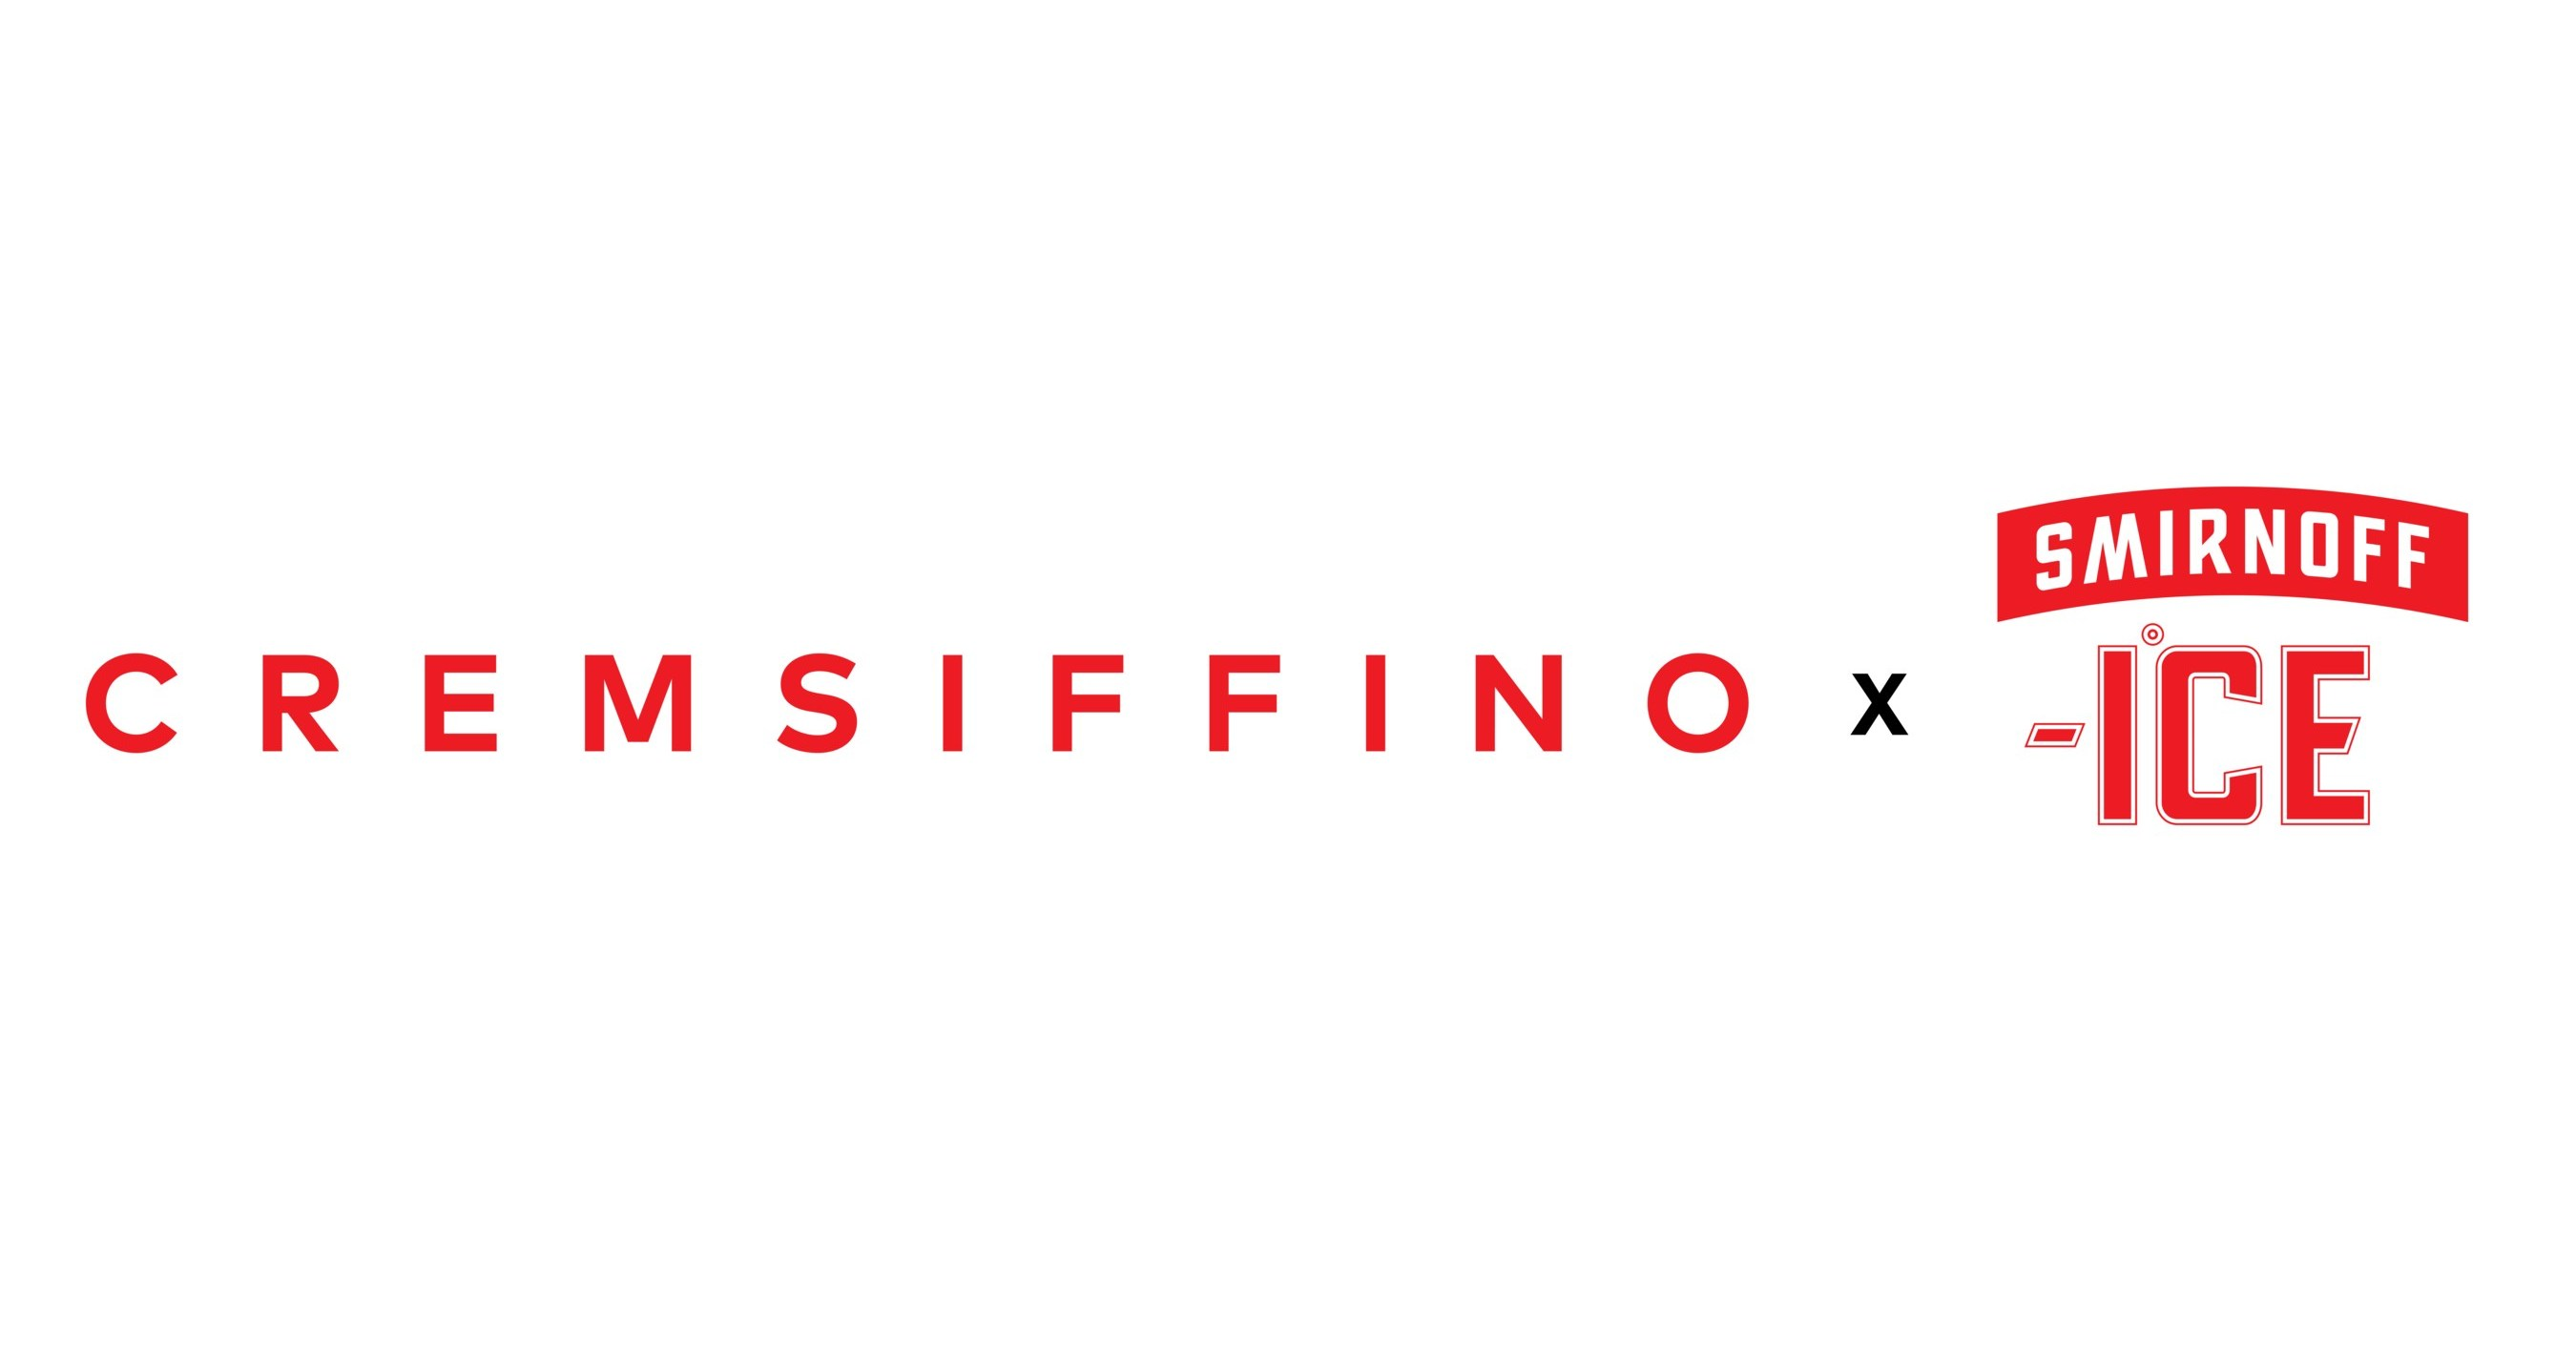 Smirnoff Ice Partners With Luxury Home Goods Brand Cremsiffino To Create Must-have Gifts For This Year's Holiday Gift Exchange photo